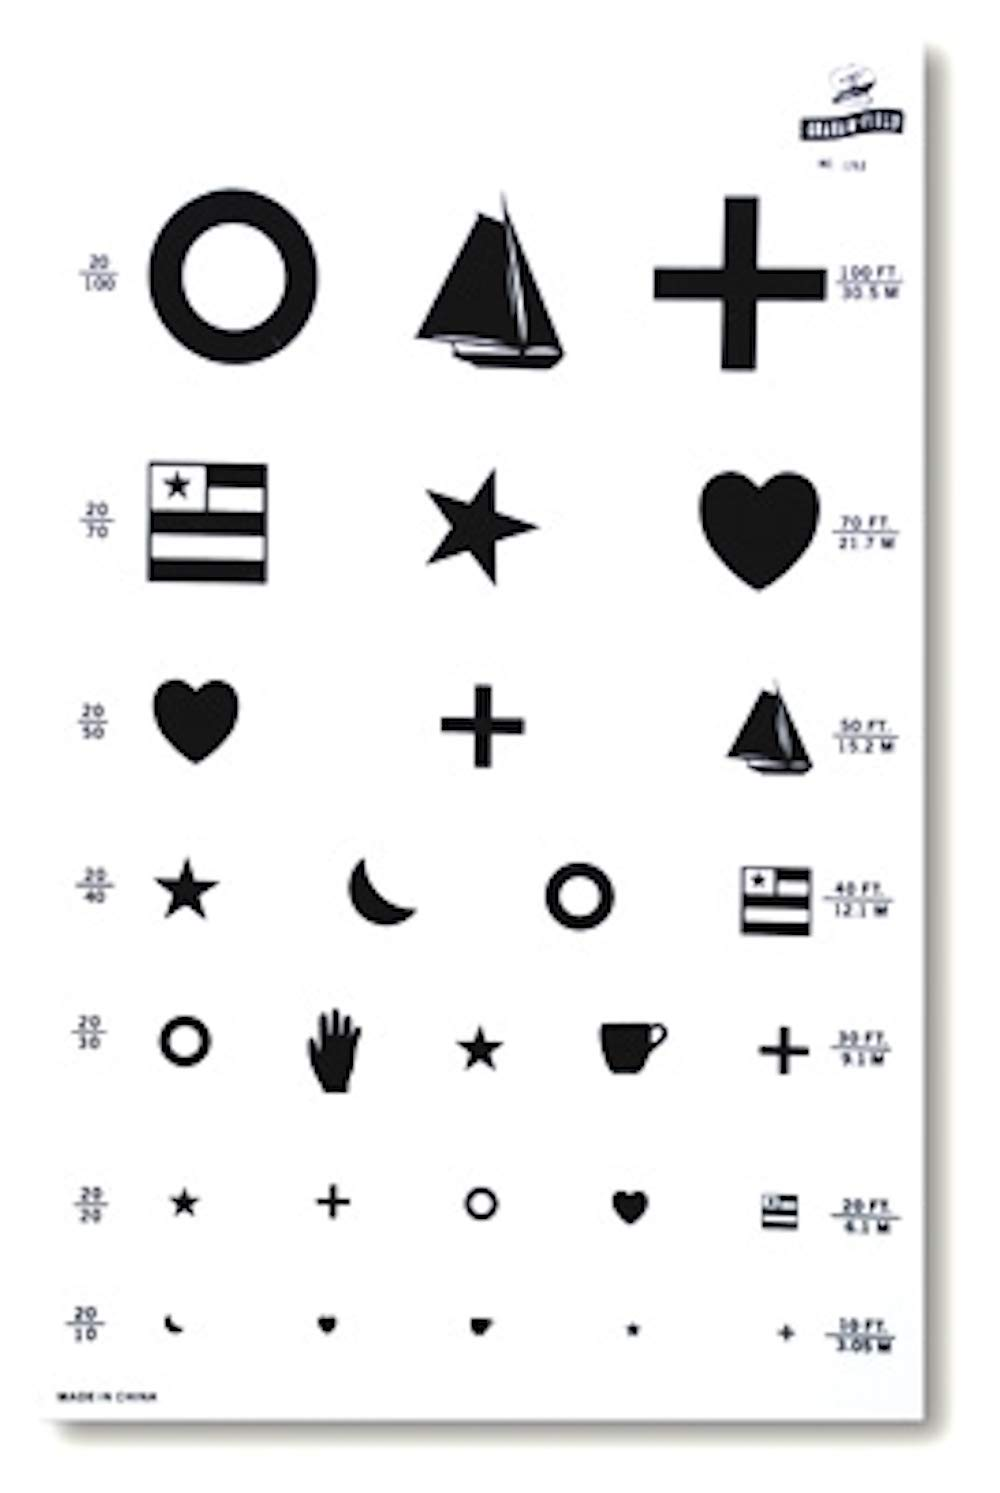 Pivit Illuminated Kindergarten Vision Test Chart | 14'' Height x 9'' Width | 20 Foot Distance Easy to Distinguish Objects | Medical Eye Exam Wall Charts for Testing Pediatric & Illiterate Visual Acuity